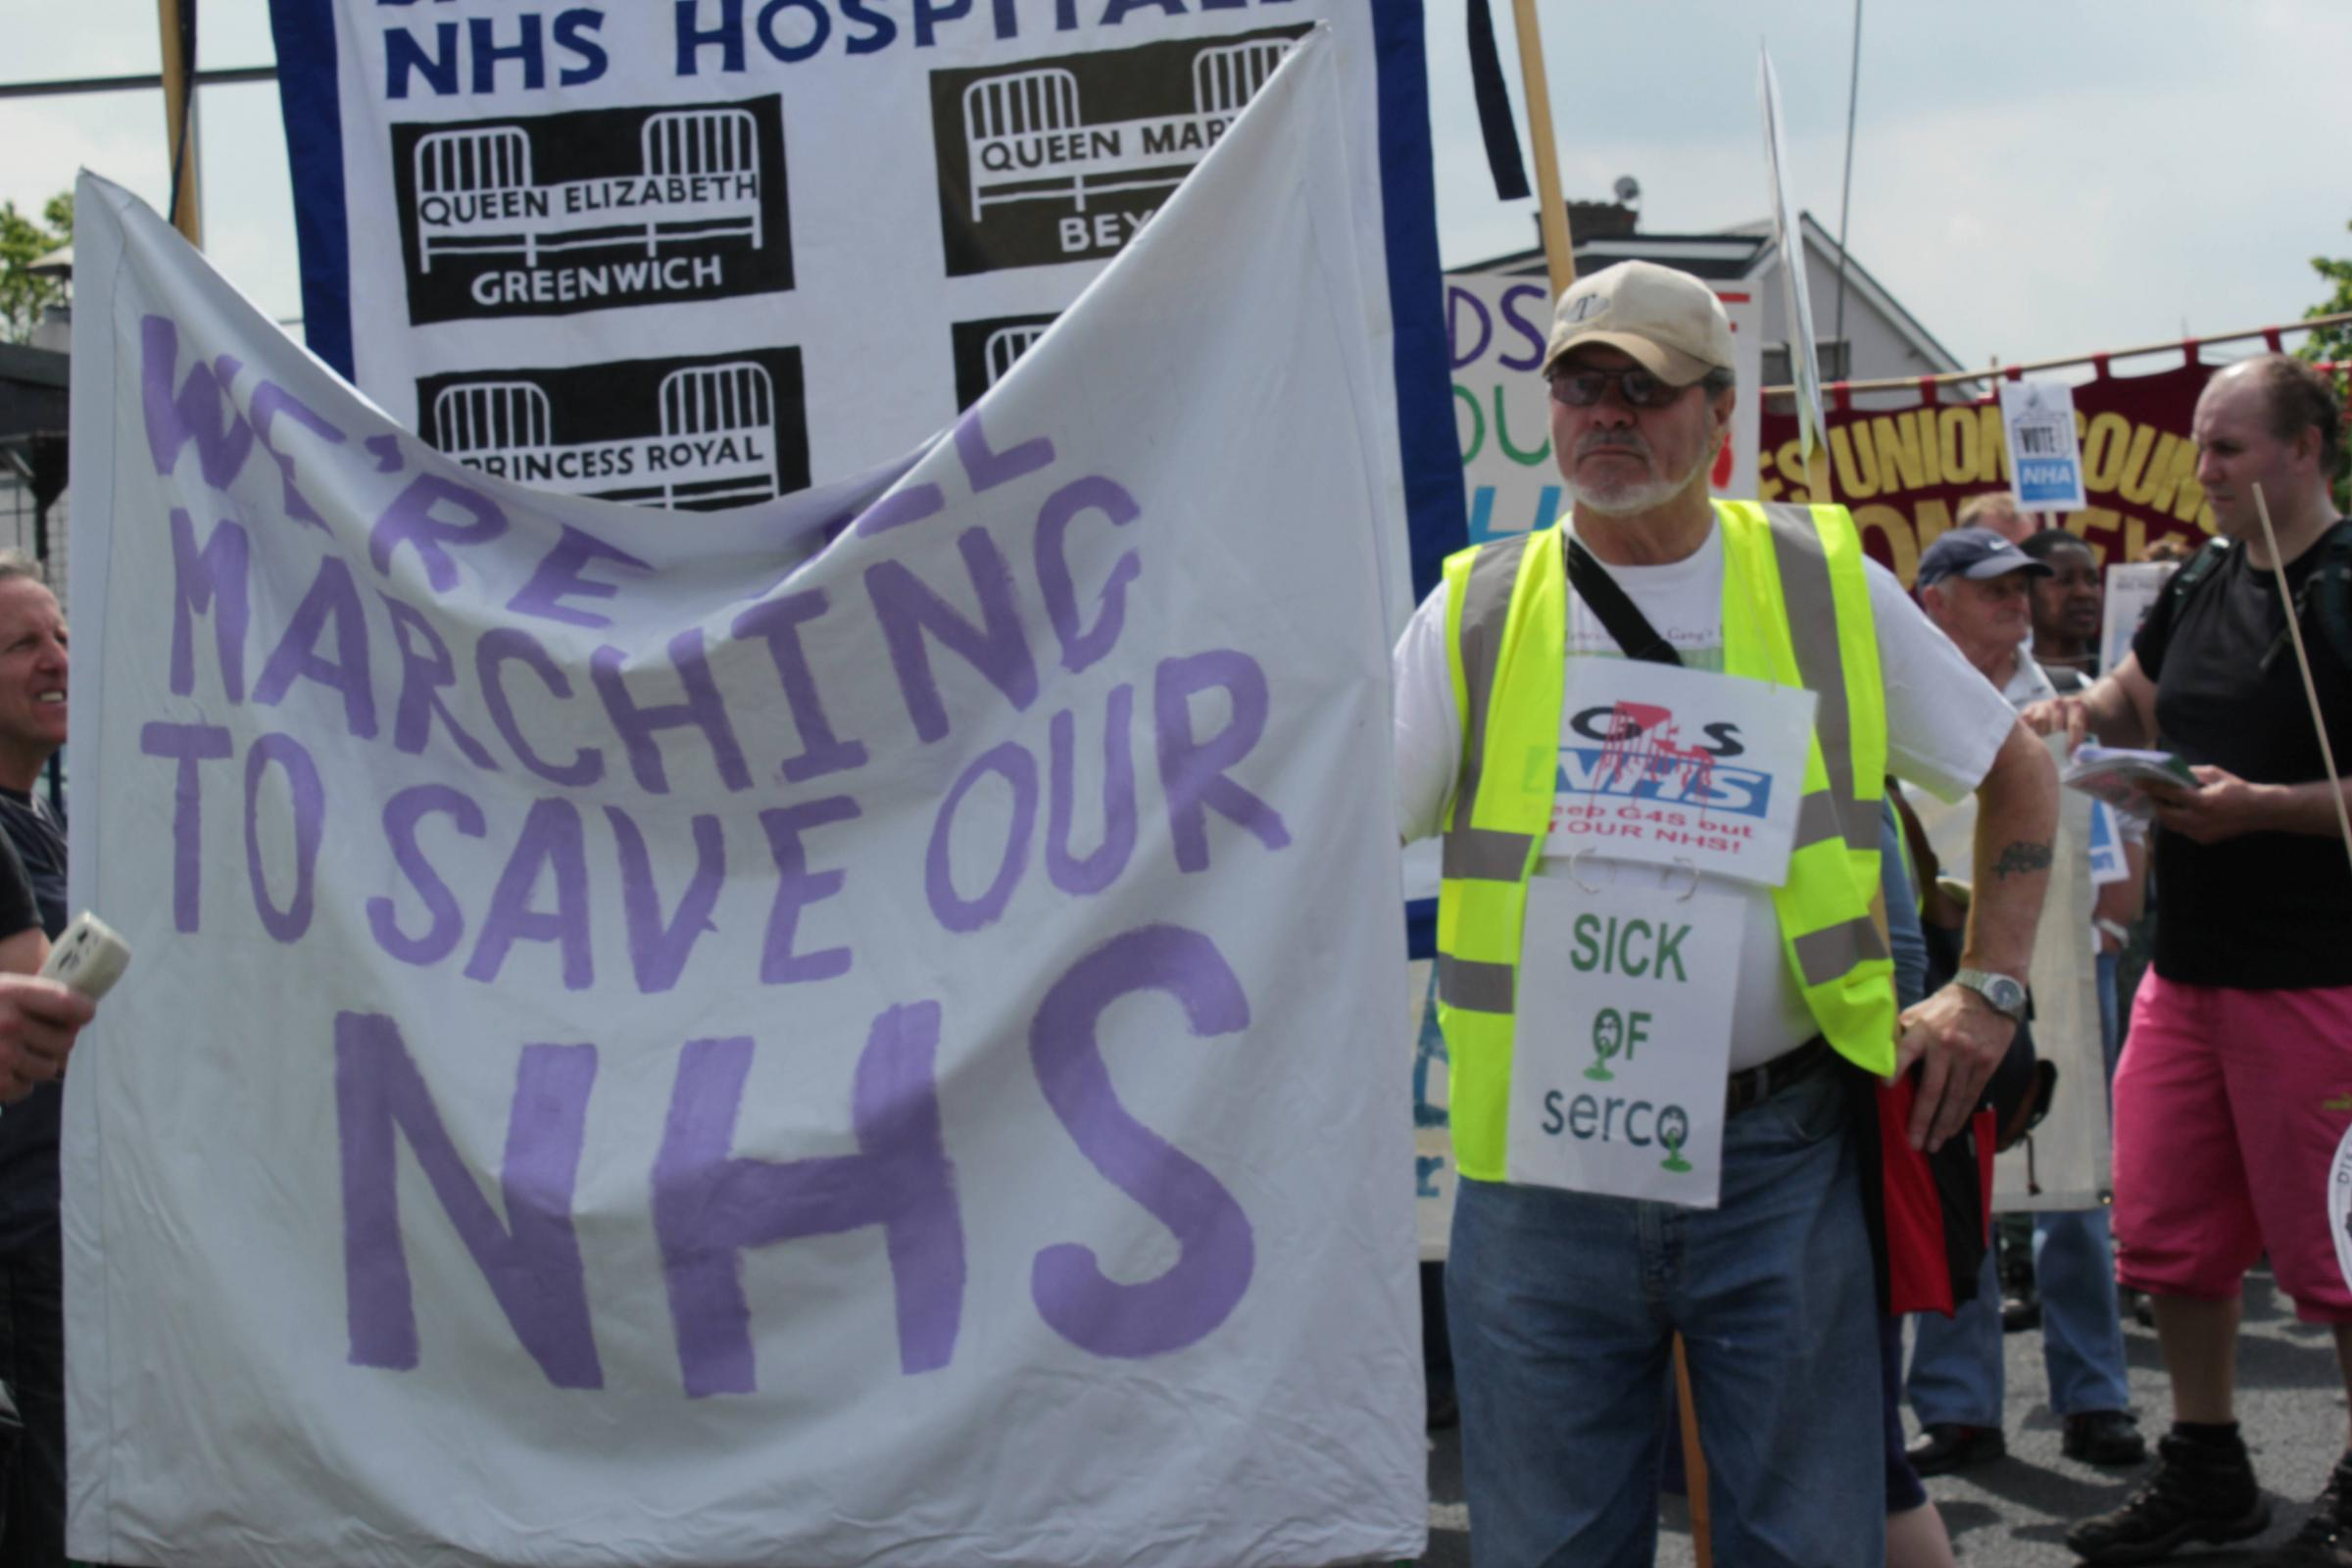 Anti-privatisation protest in Bexley